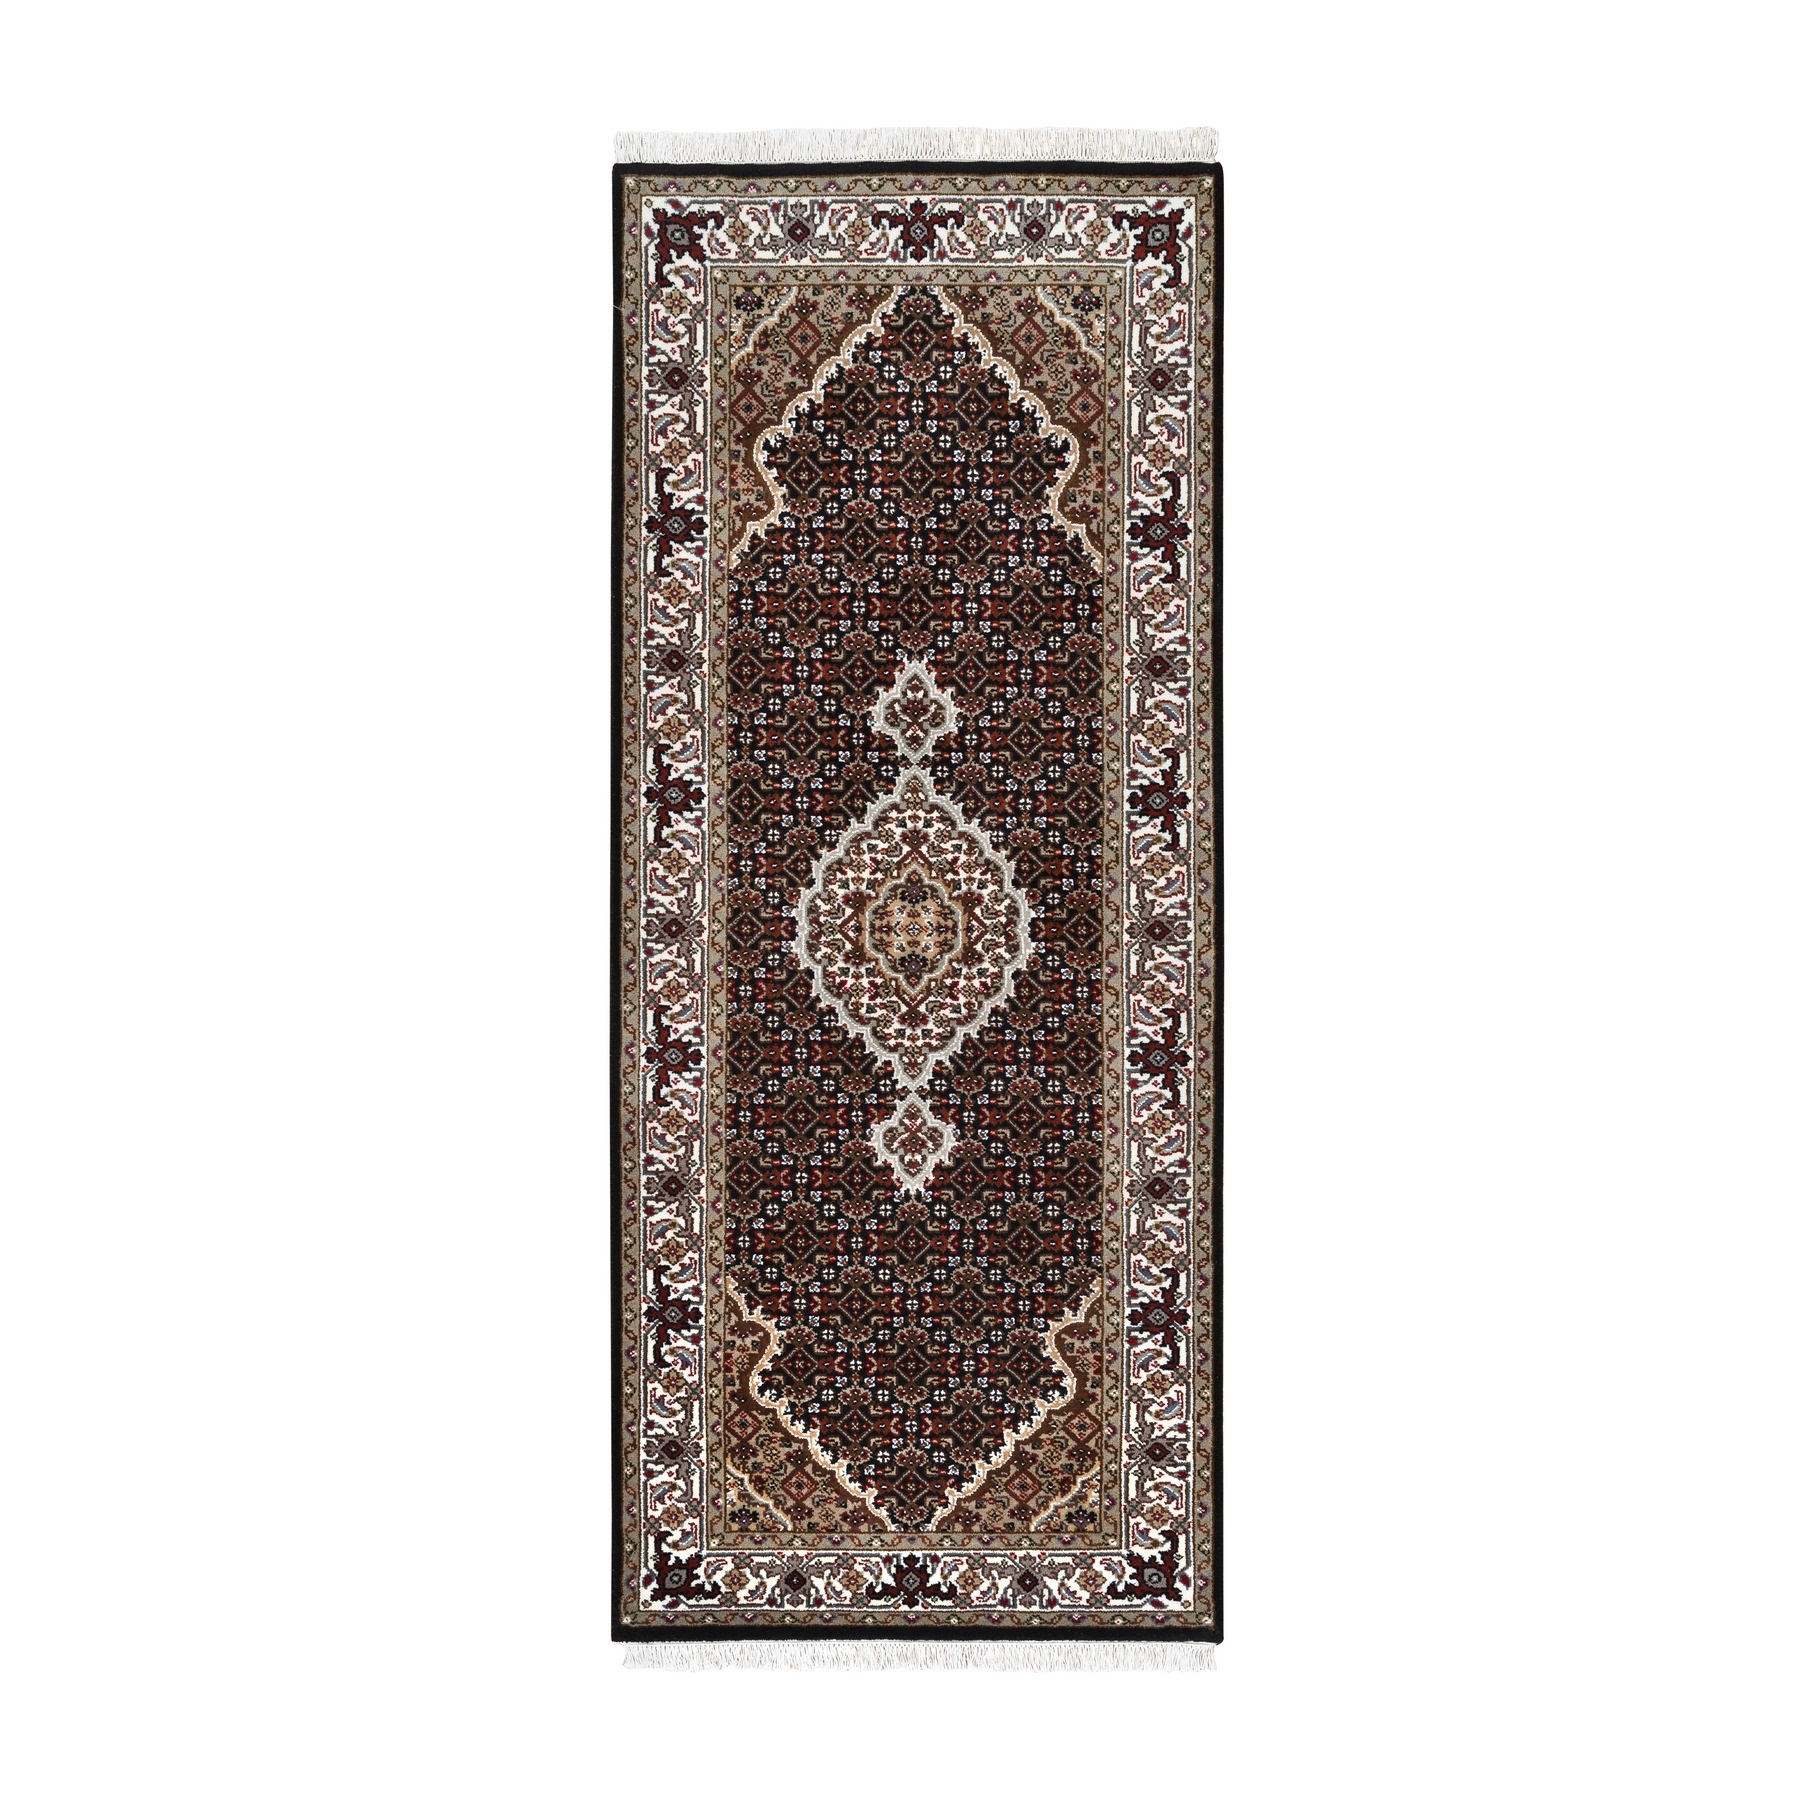 "2'8""x6'8"" Black Tabriz Mahi Fish Medallion Design Wool And Silk Hand Woven Black Oriental Runner Rug"